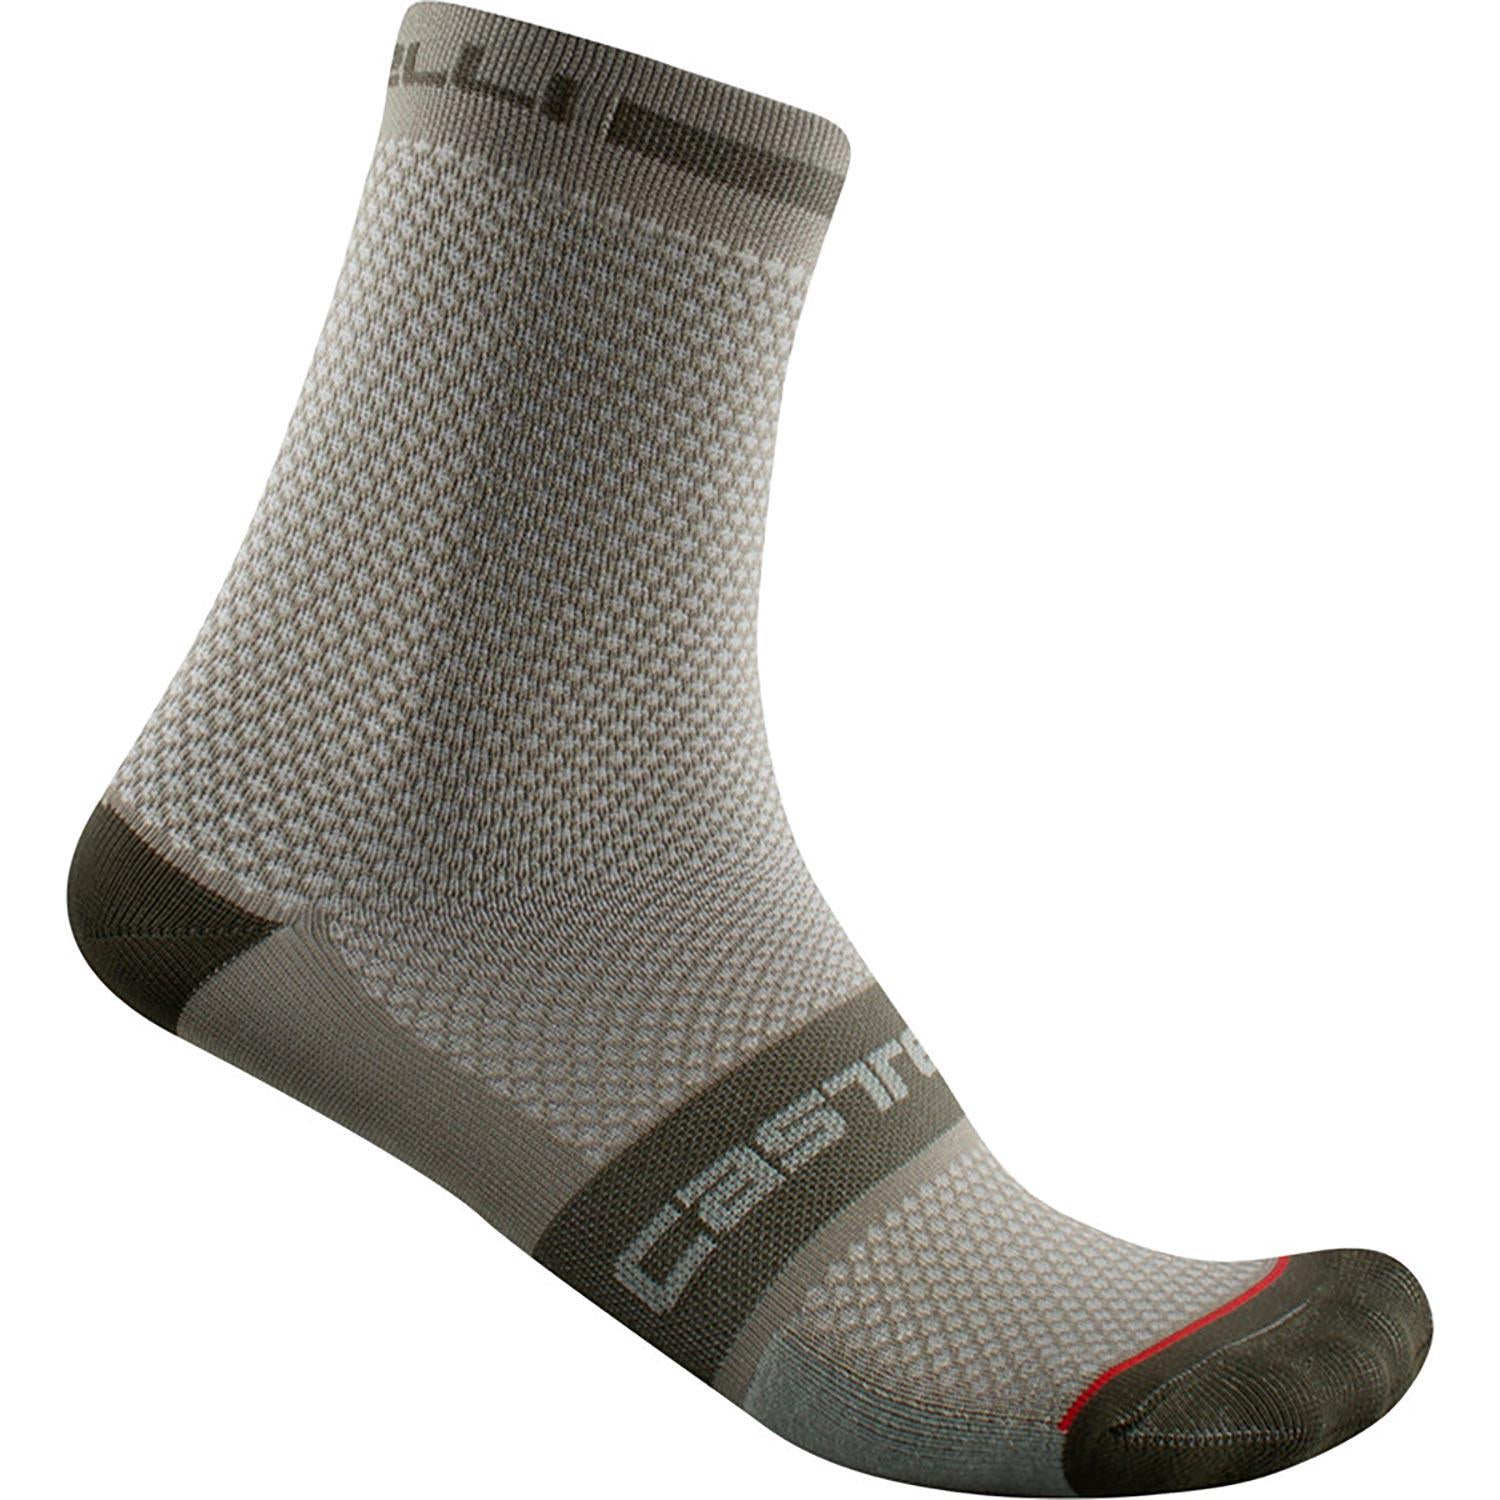 Castelli-Castelli Superleggera T 12 Socks-Bark Green-S/M-CS2103036409-saddleback-elite-performance-cycling